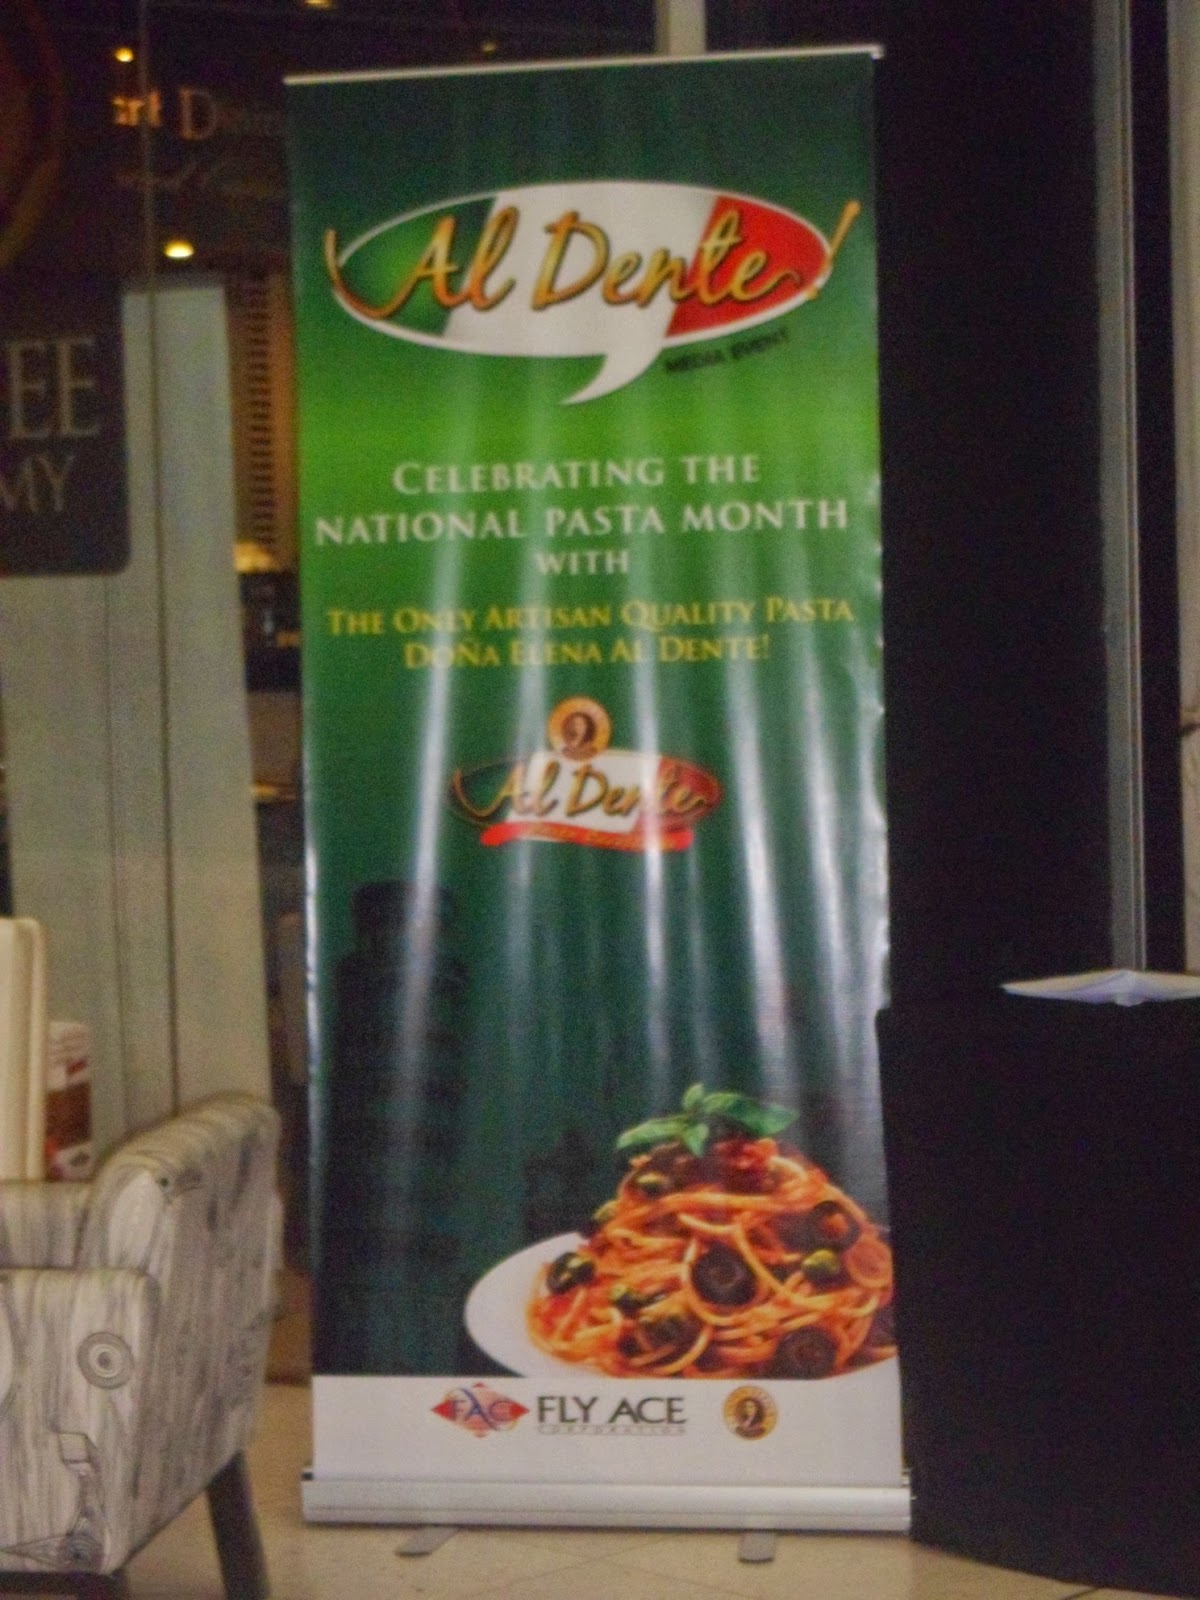 Celebrate The National Pasta Month With Dona Elena Al Dente